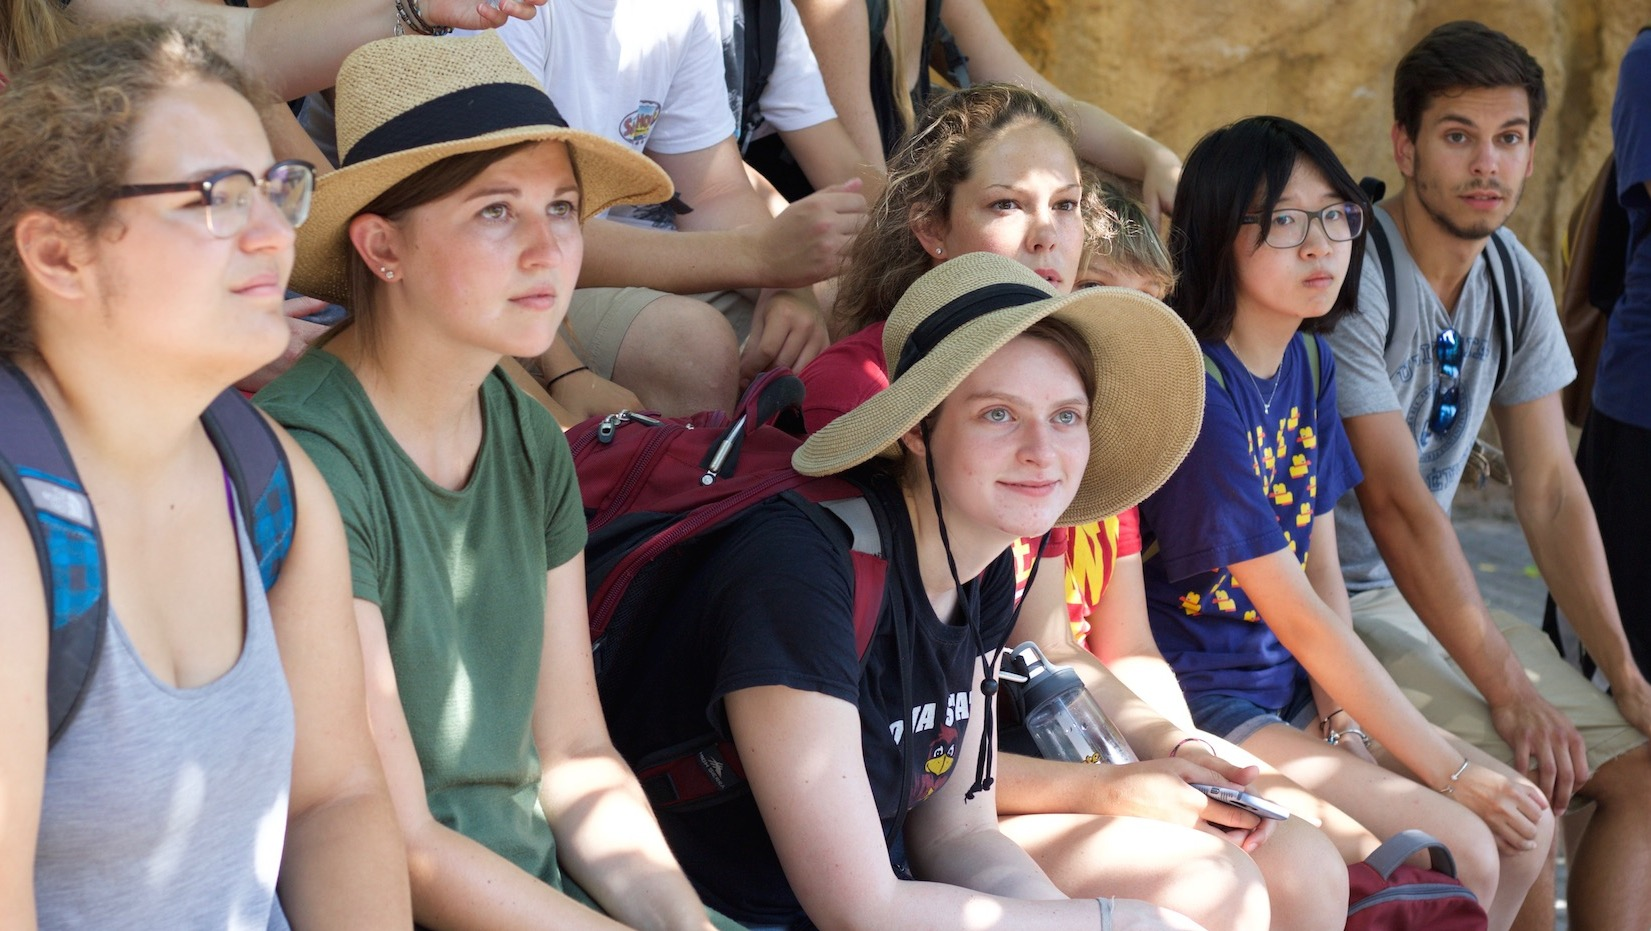 Six Iowa State students are seated in a rock area at Bioparc Valencia, a zoo in Valencia, Spain.